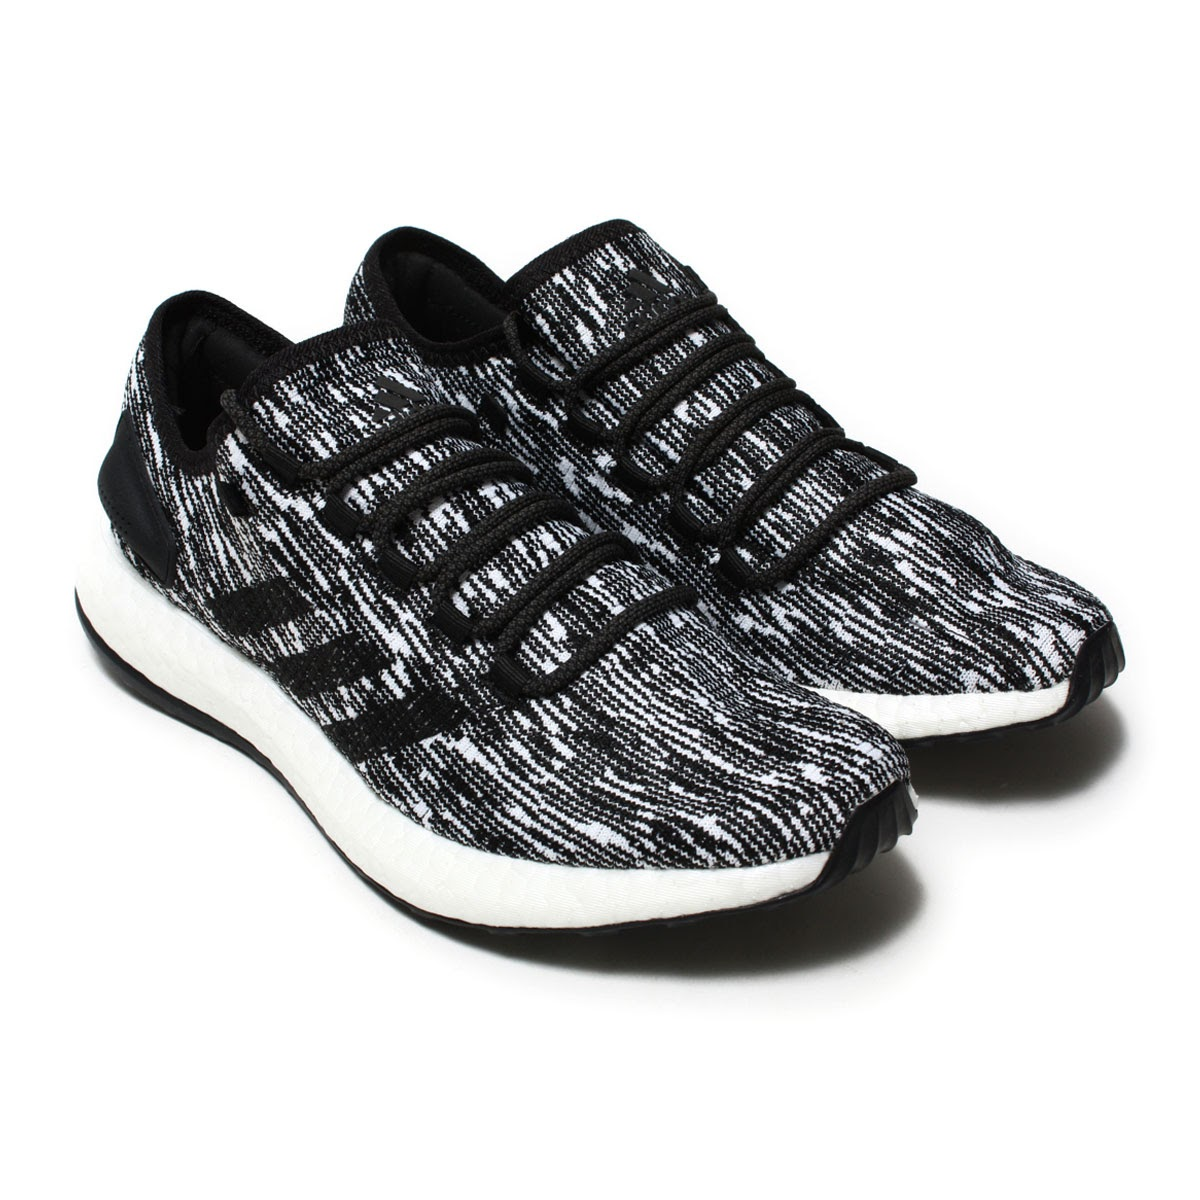 高級ブランド adidas Originals Black/Running PureBOOST LTD(アディダス オリジナルス ピュアブースト LTD)Core LTD)Core Black/Running adidas White/Running White【メンズ】17FW-I, 阿南市:8af9ca63 --- paulogalvao.com